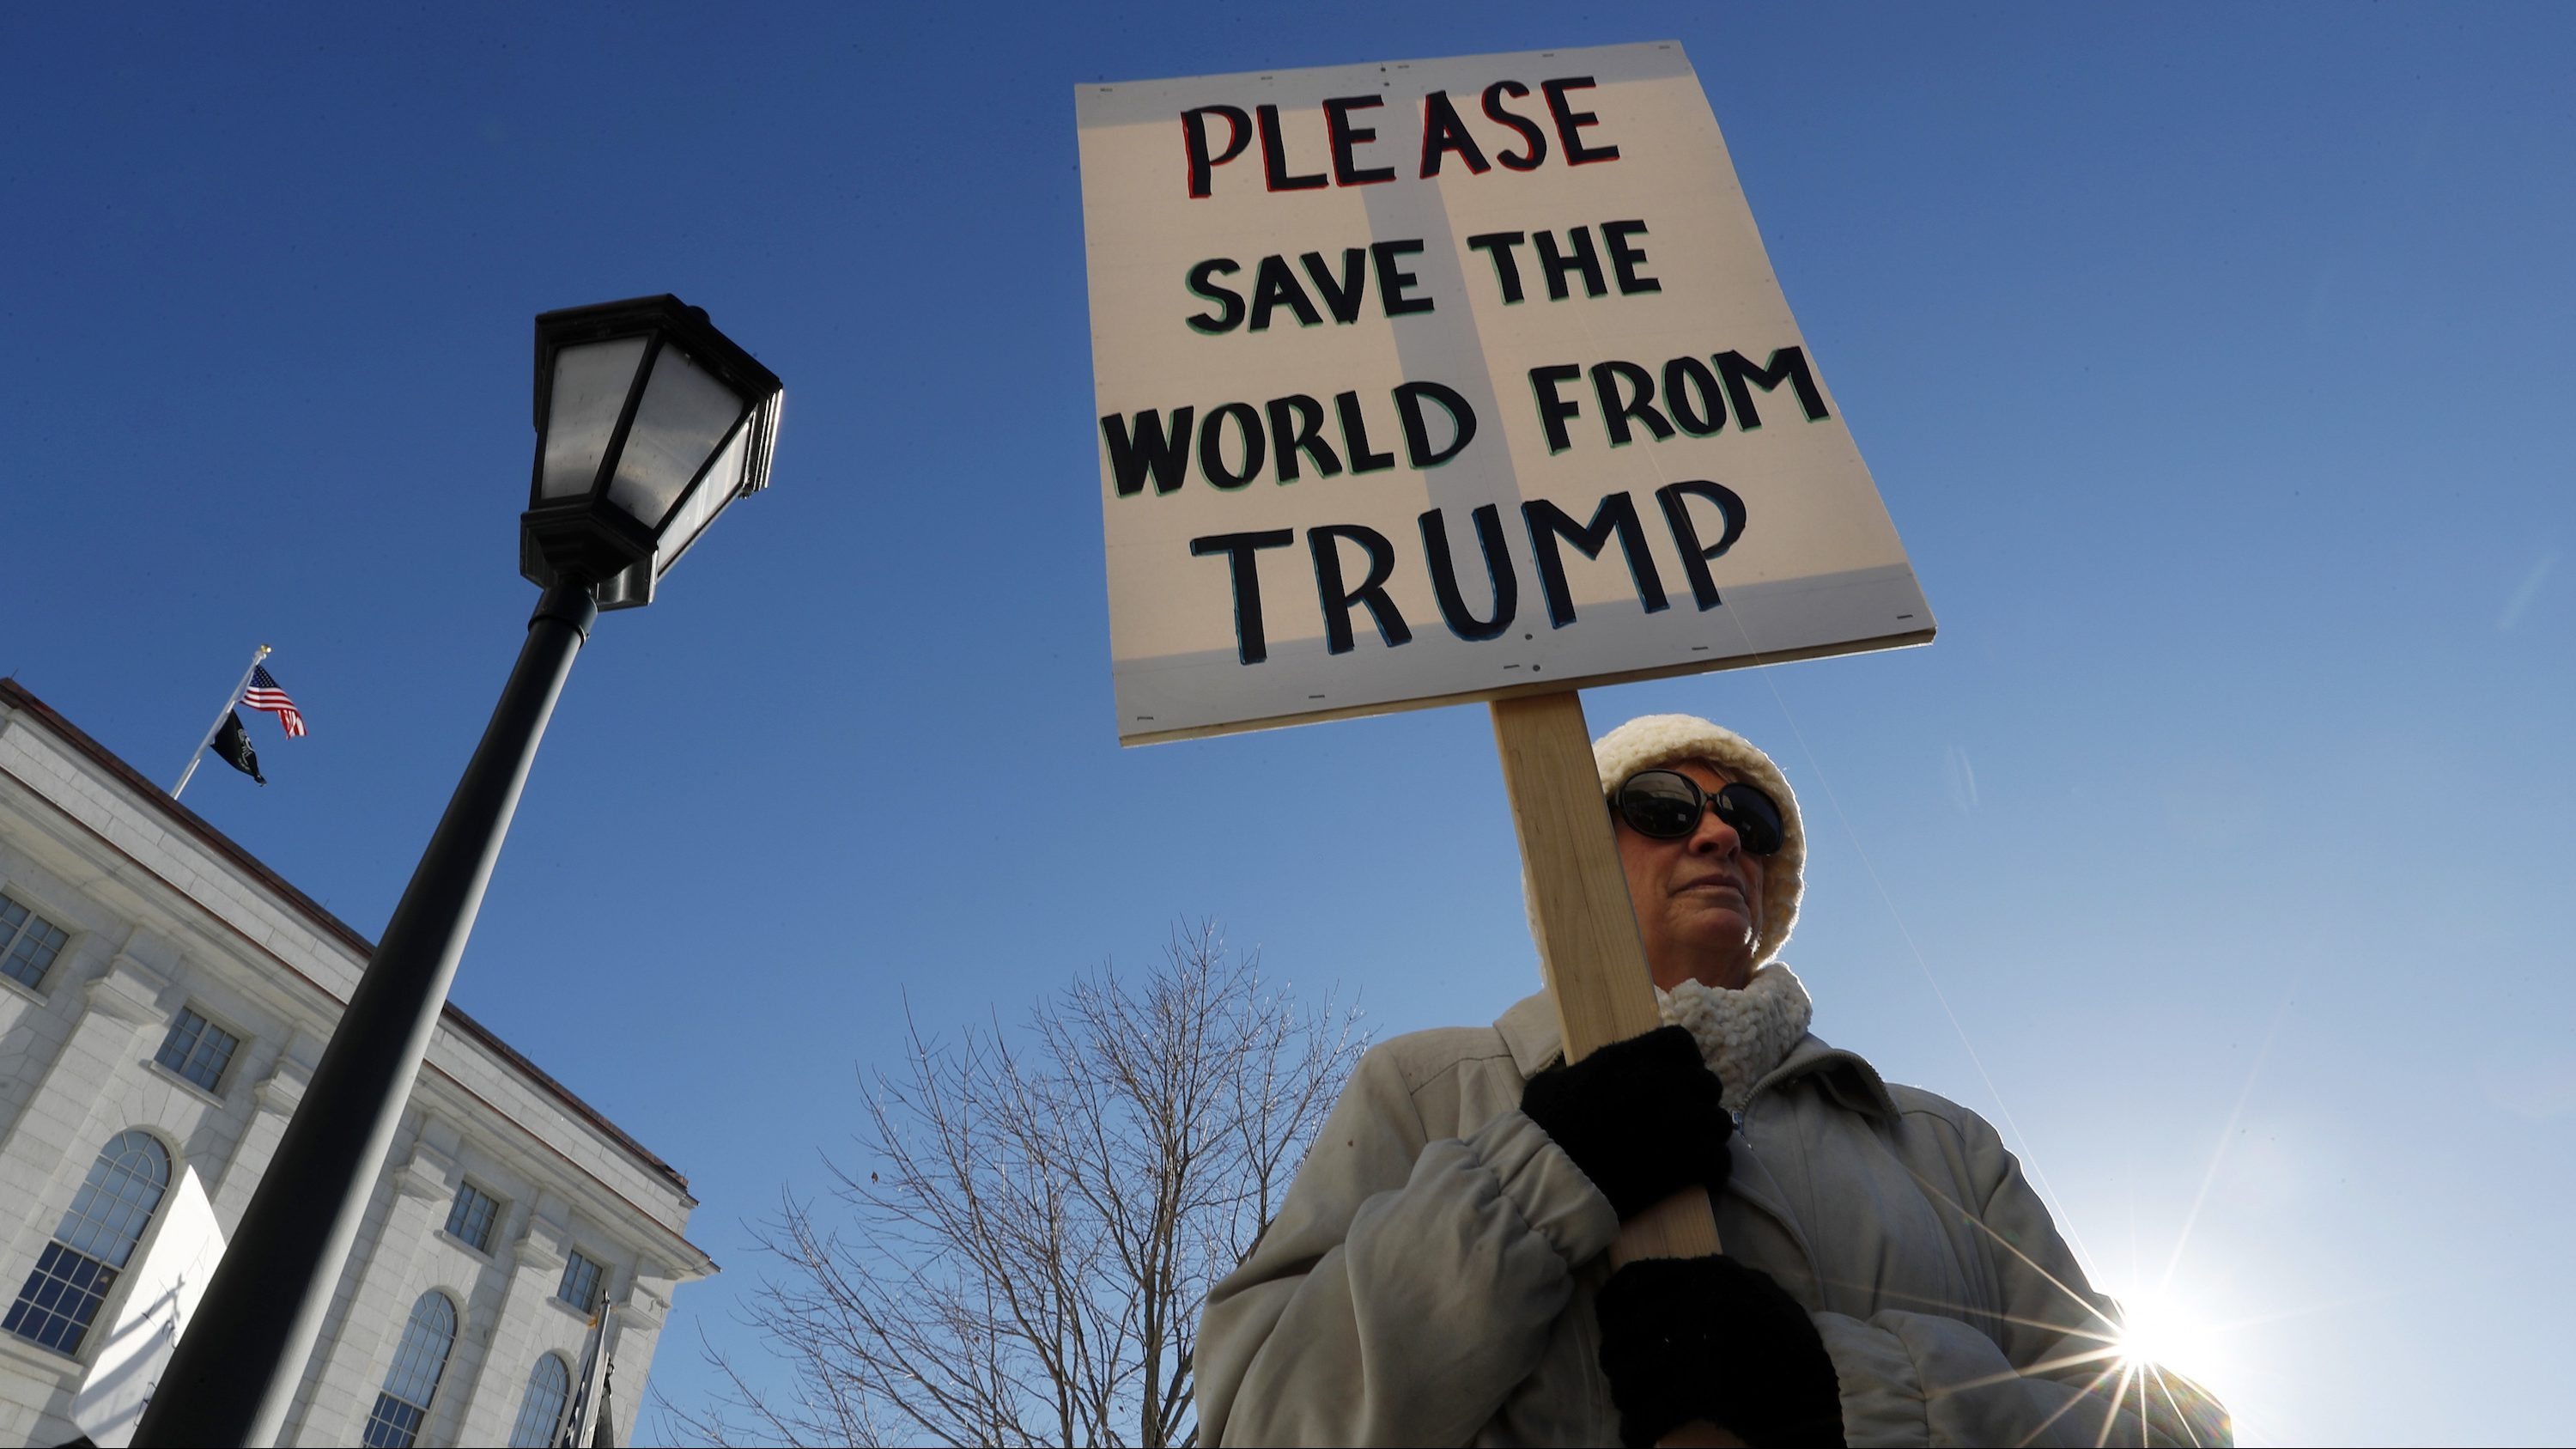 Davina Foti, of Exeter, N.H., attends a protest against President-elect Donald Trump Monday, Dec. 19, 2016, at the State House in Augusta, Maine. Maine's electoral college voters split their vote with 3 ballots for Hillary Clinton and one for Trump.